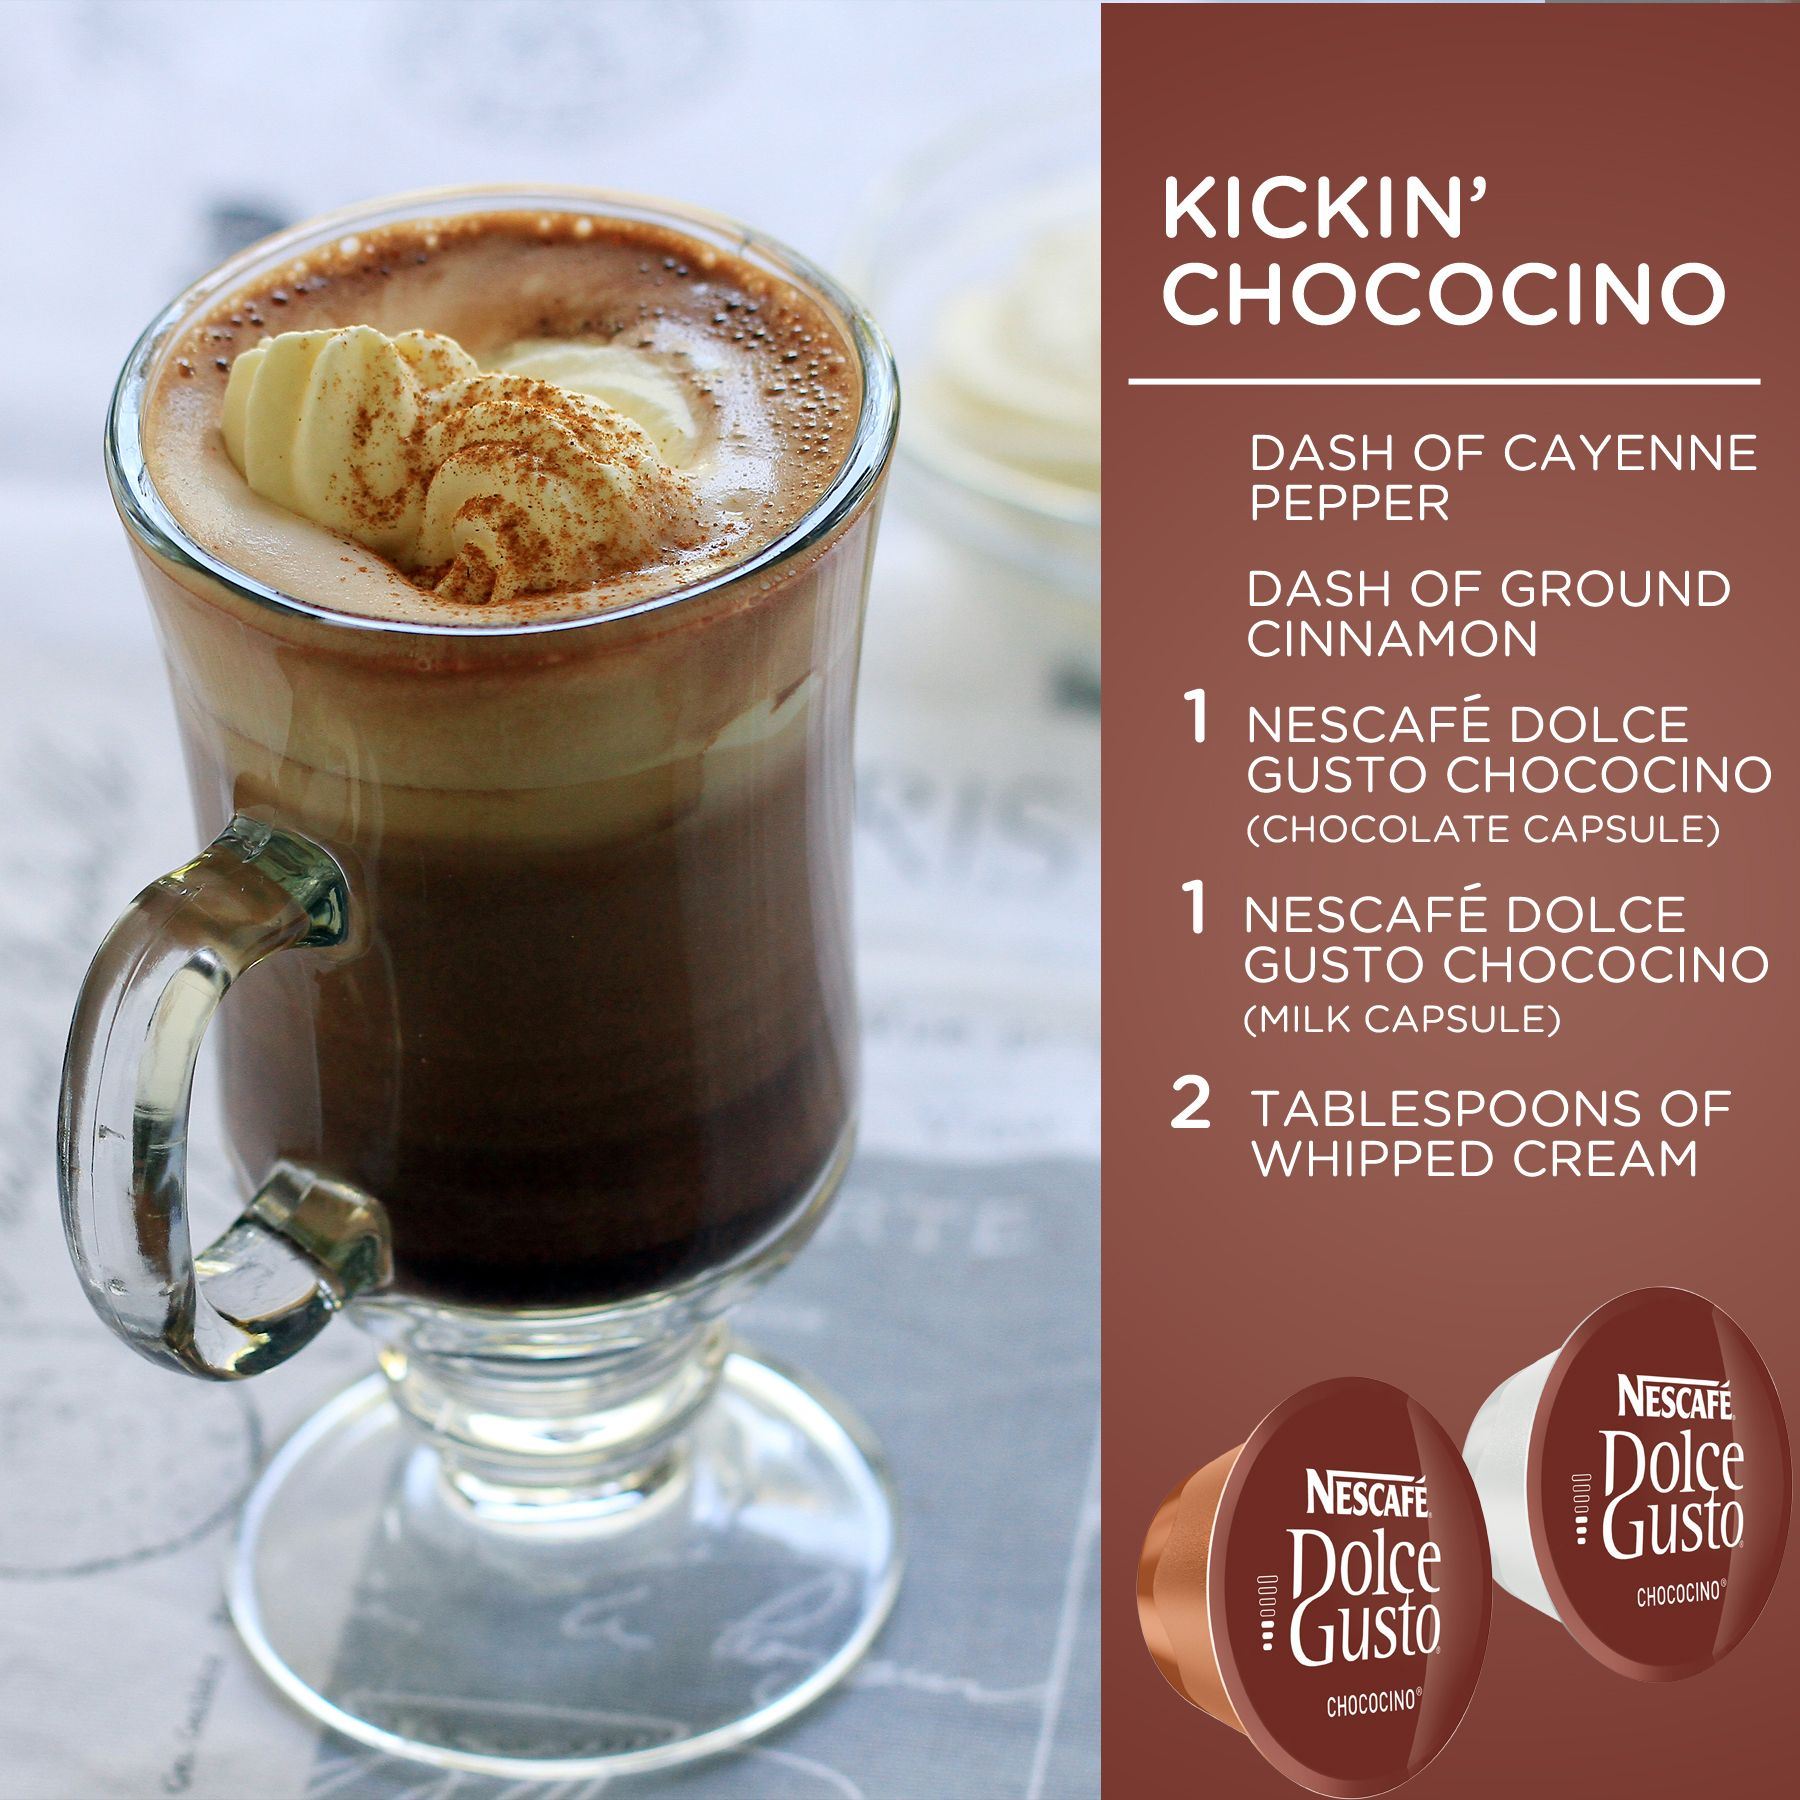 Add A Little Kick To Your Chococino Today With A Dash Of Cayenne